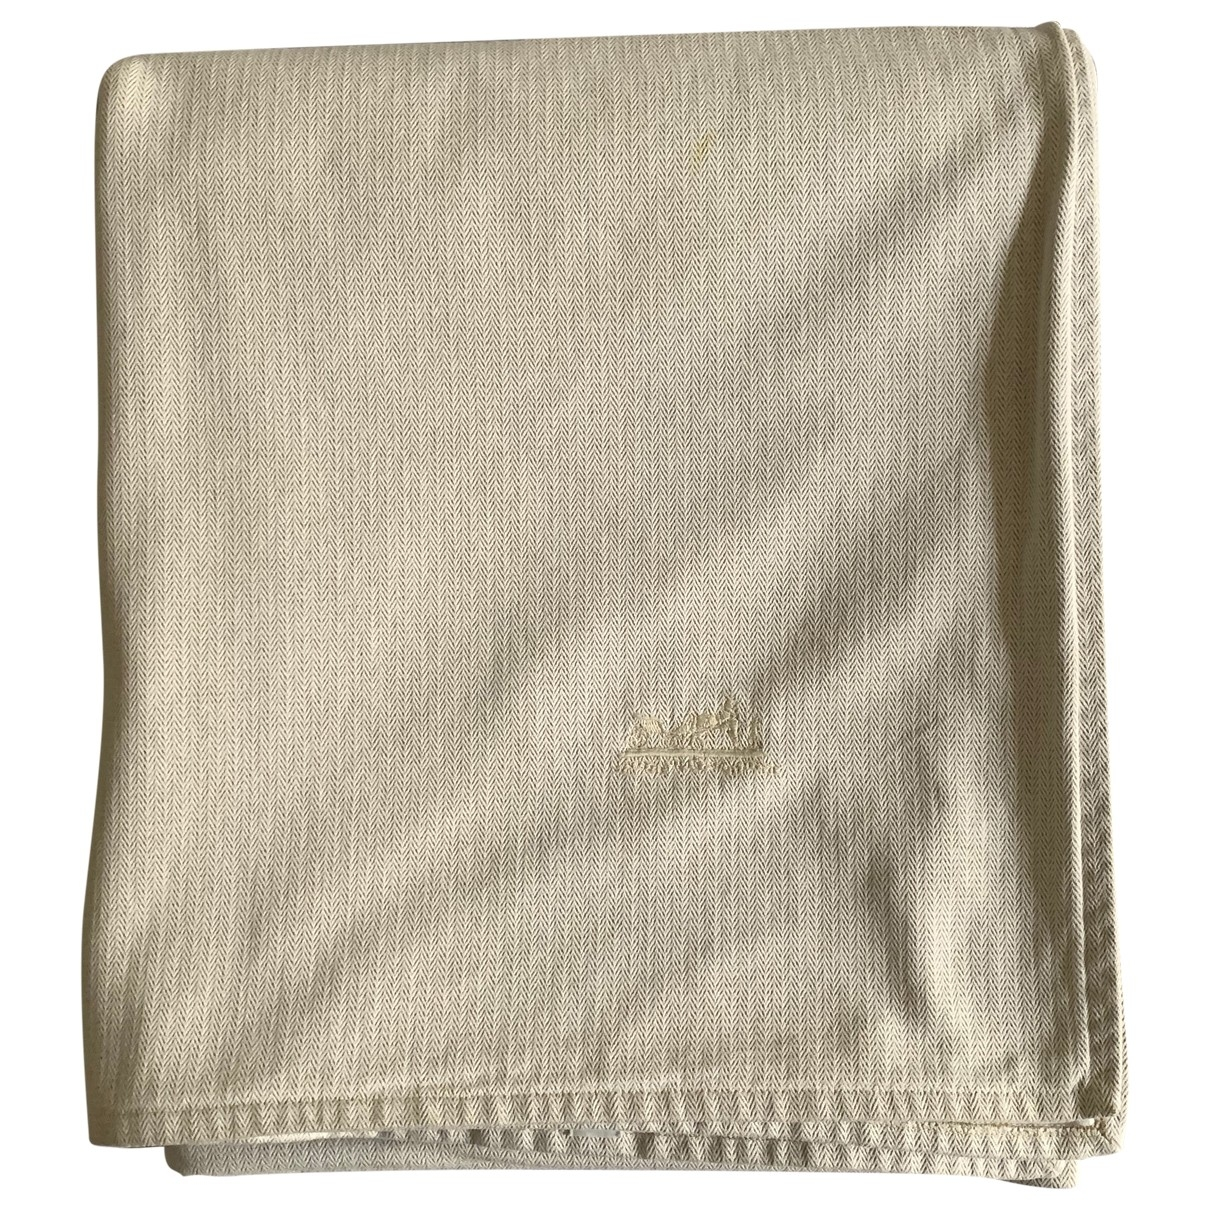 Hermès \N Beige Cotton Textiles for Life & Living \N